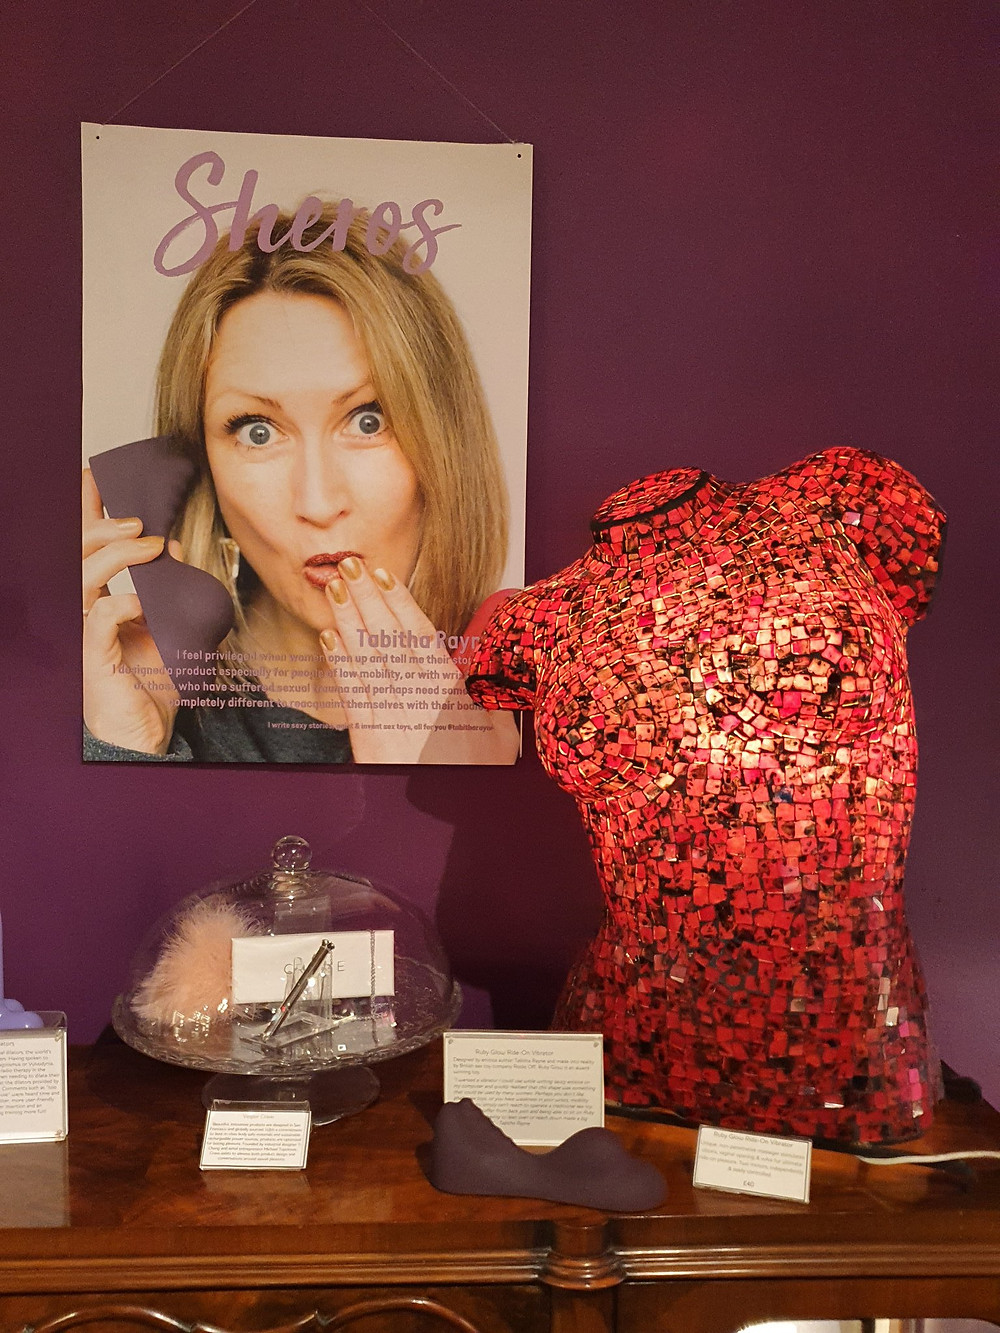 a display with a poster of Tabitha Rayne for the Sh WOmenstore sheros evening - a light up red mosiac torso to the right and a Ruby Glow Dusk middle bottom